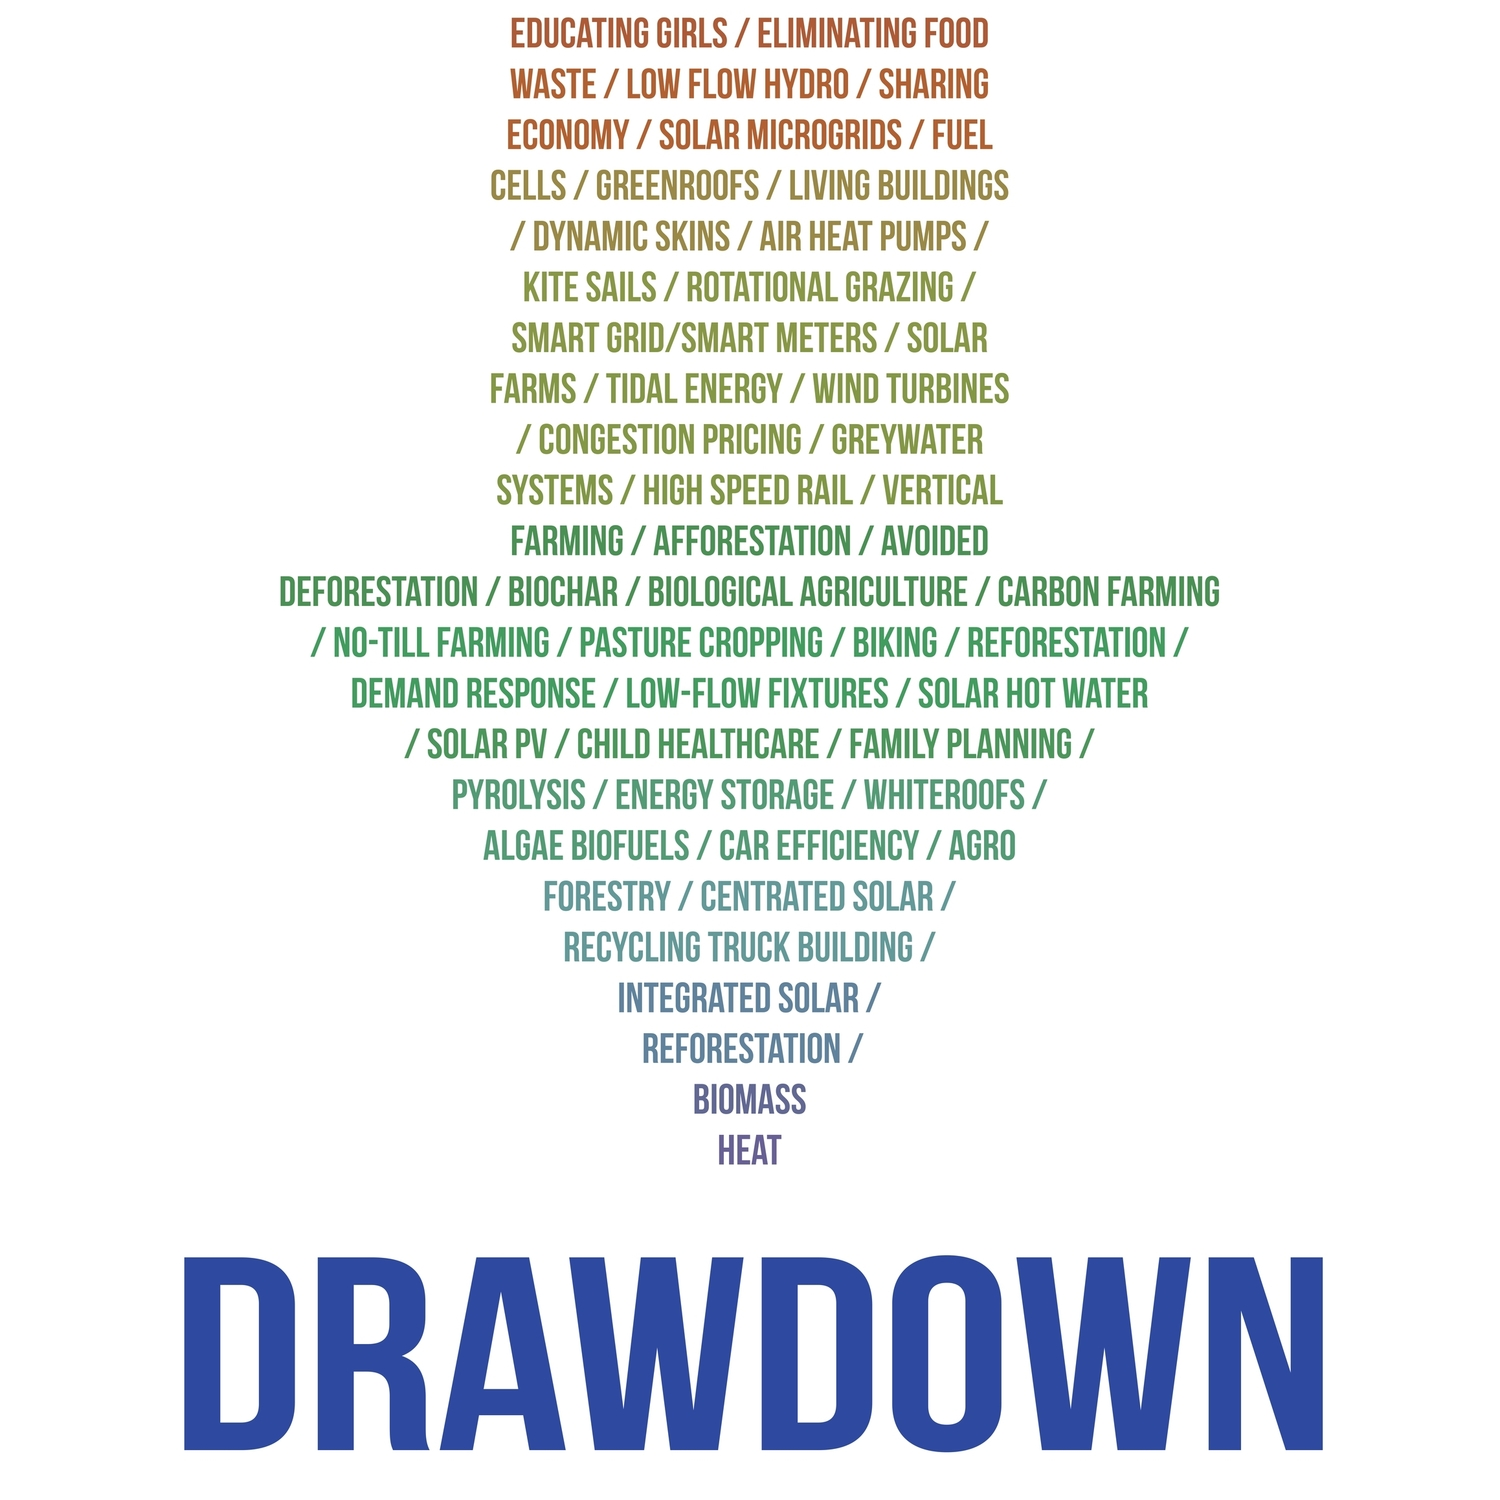 Drawdown-arrow.jpg